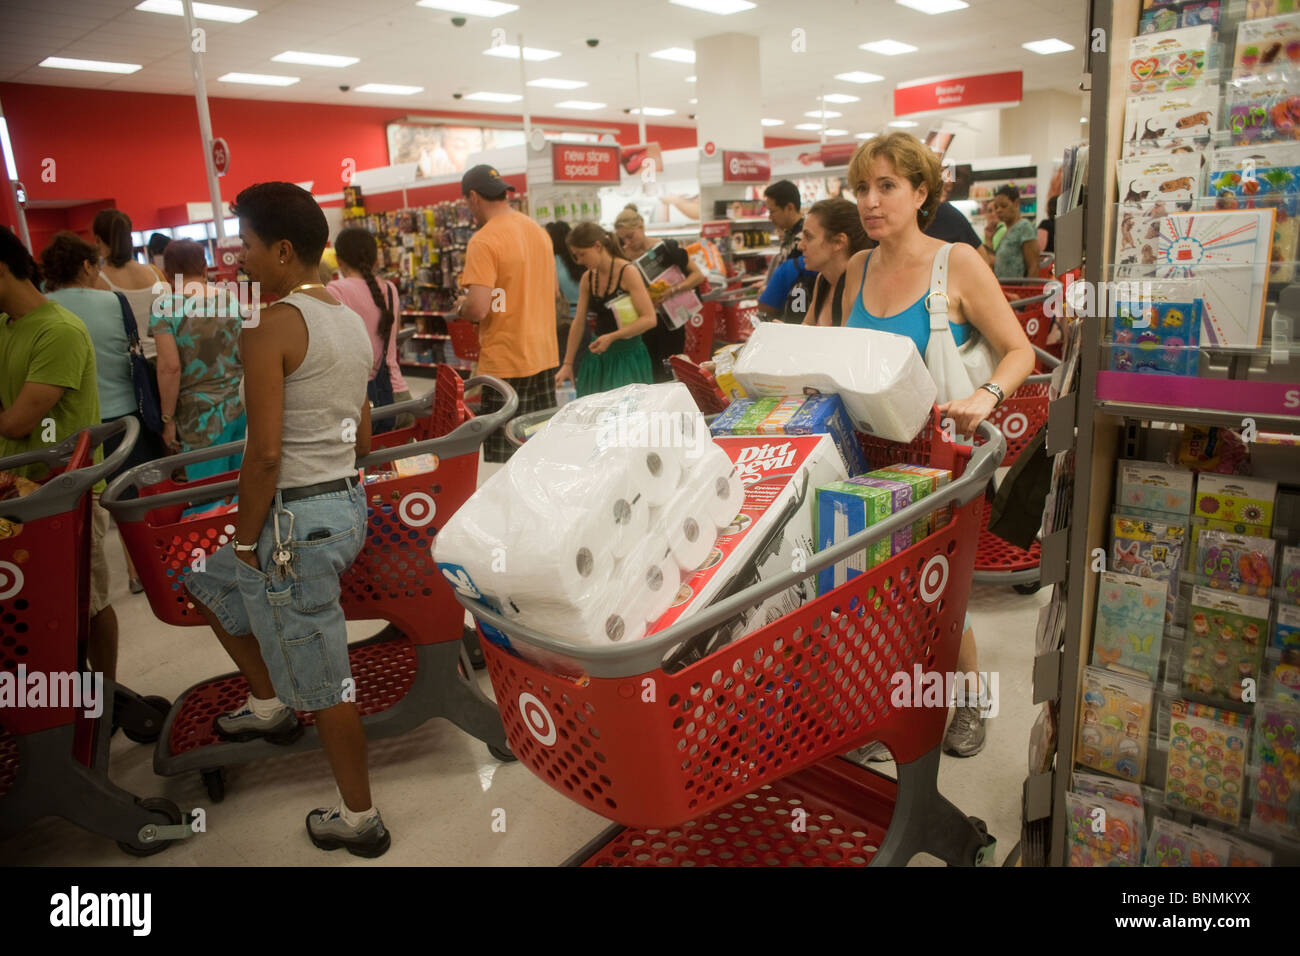 Target East Harlem High Resolution Stock Photography And Images Alamy